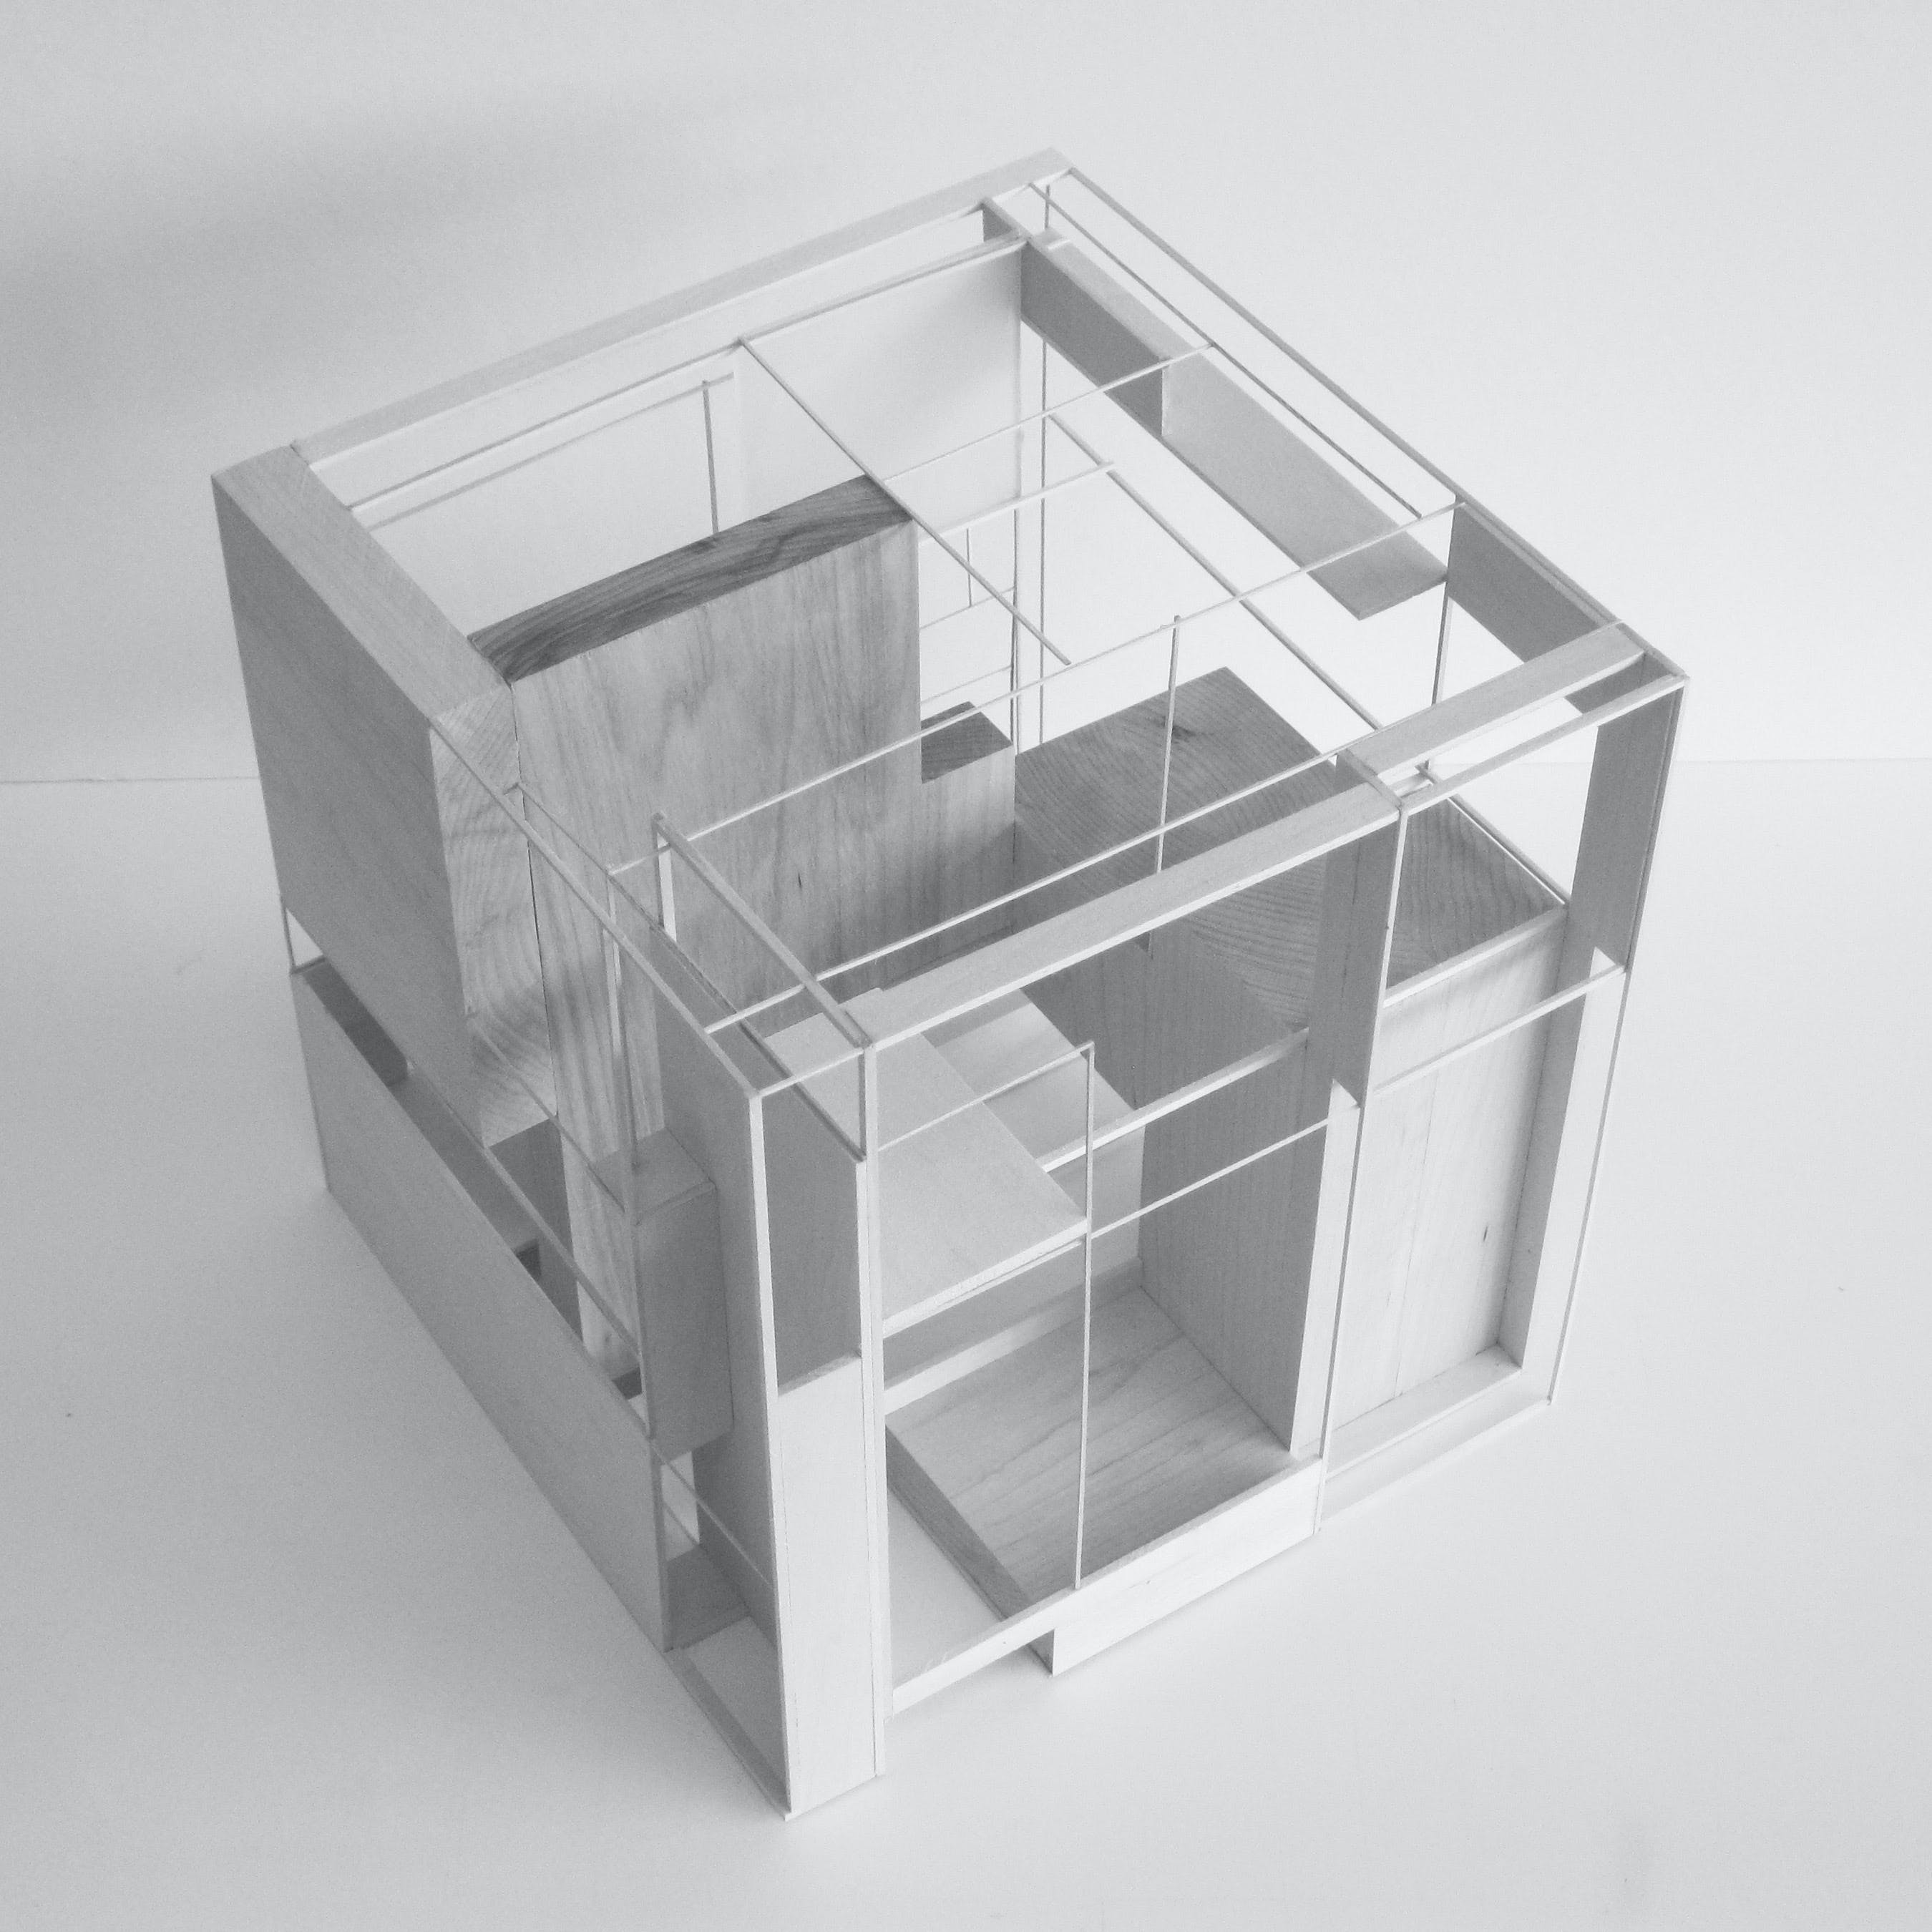 Cube Construct    Final Design Proposal